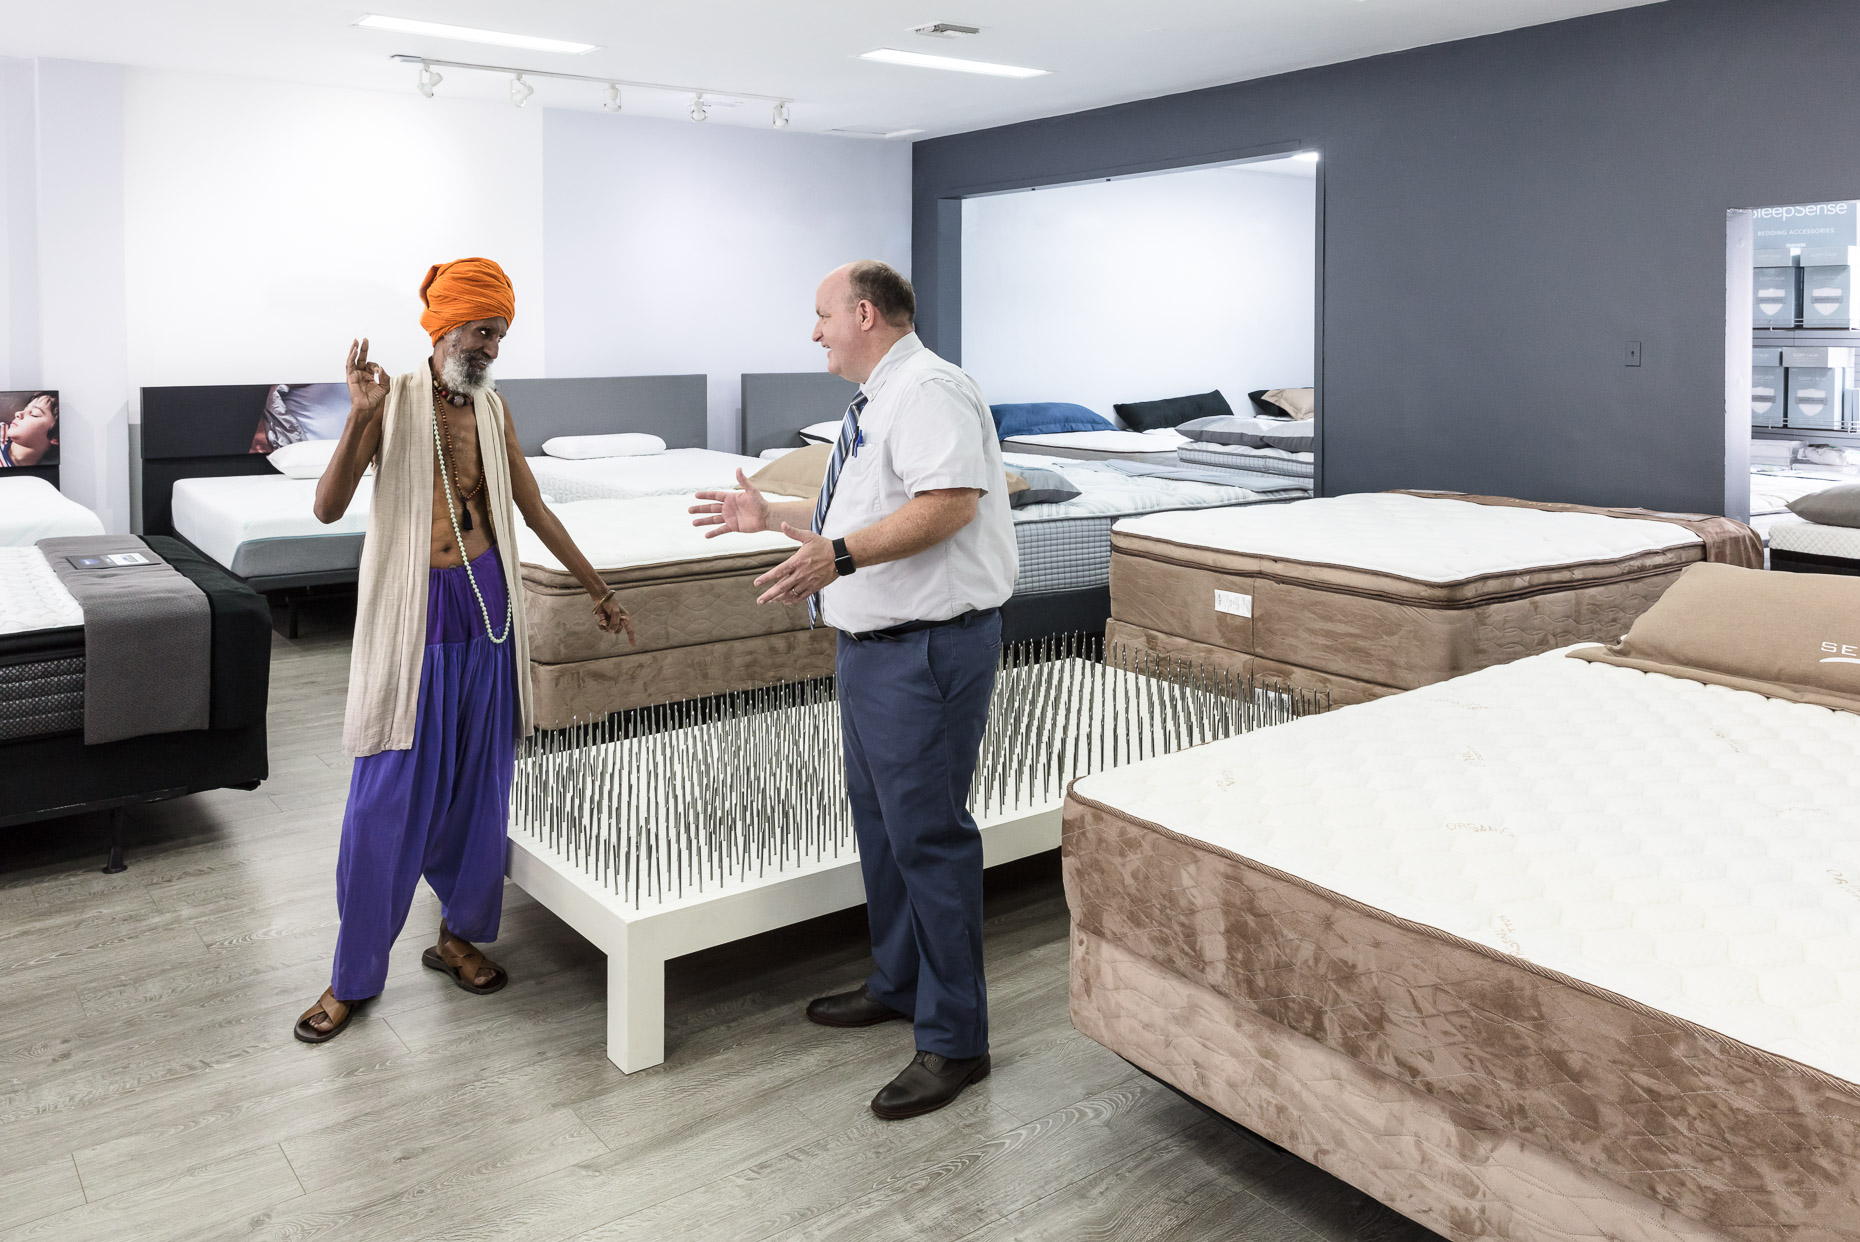 Fakir/Swami/Indian man shopping for bed of nails in mattress store by David Zaitz